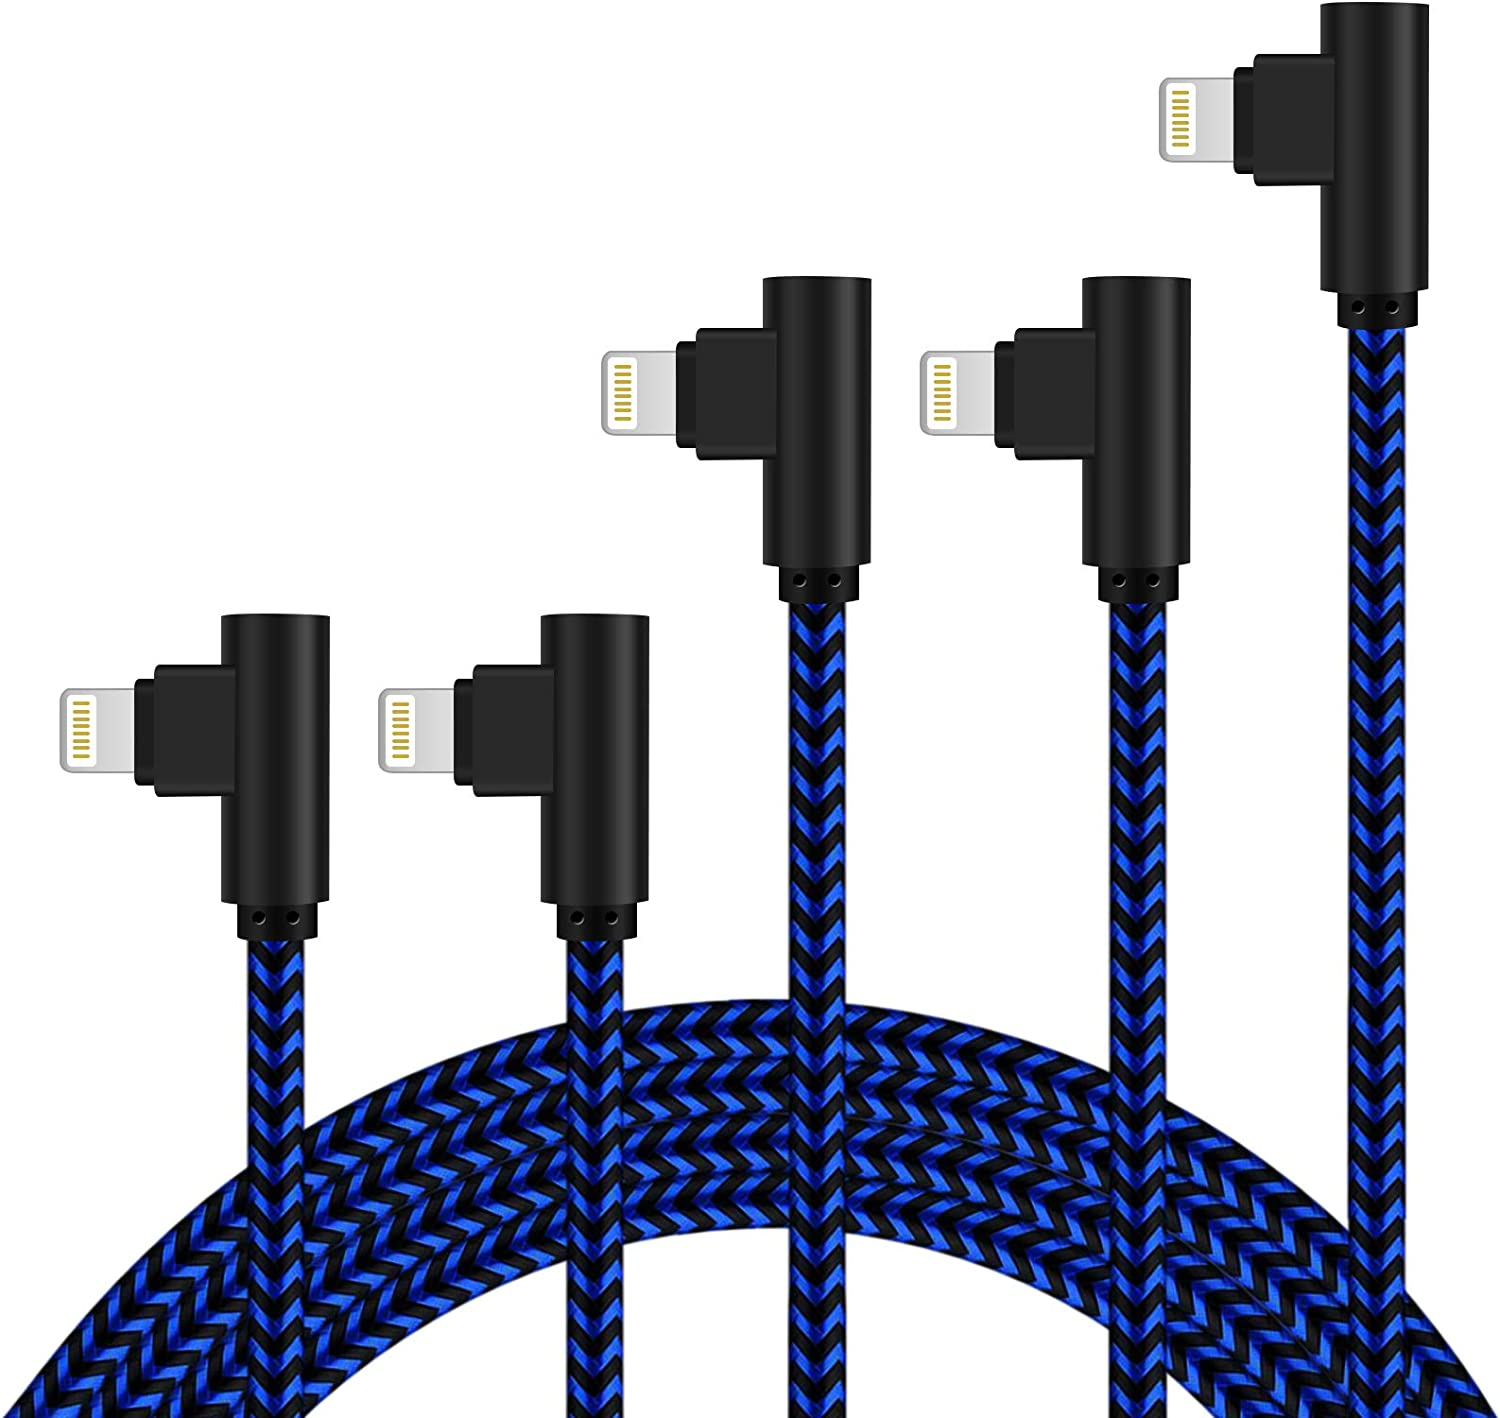 Right Angle iPhone Charger 5Pack 90 Degree Lightning Cable 3FT/6FT/10FT Long Nylon Braided iPhone Data Cable Wire Fast Charging Cord Compatible iPhone/iPad/iPod (Blue Black)